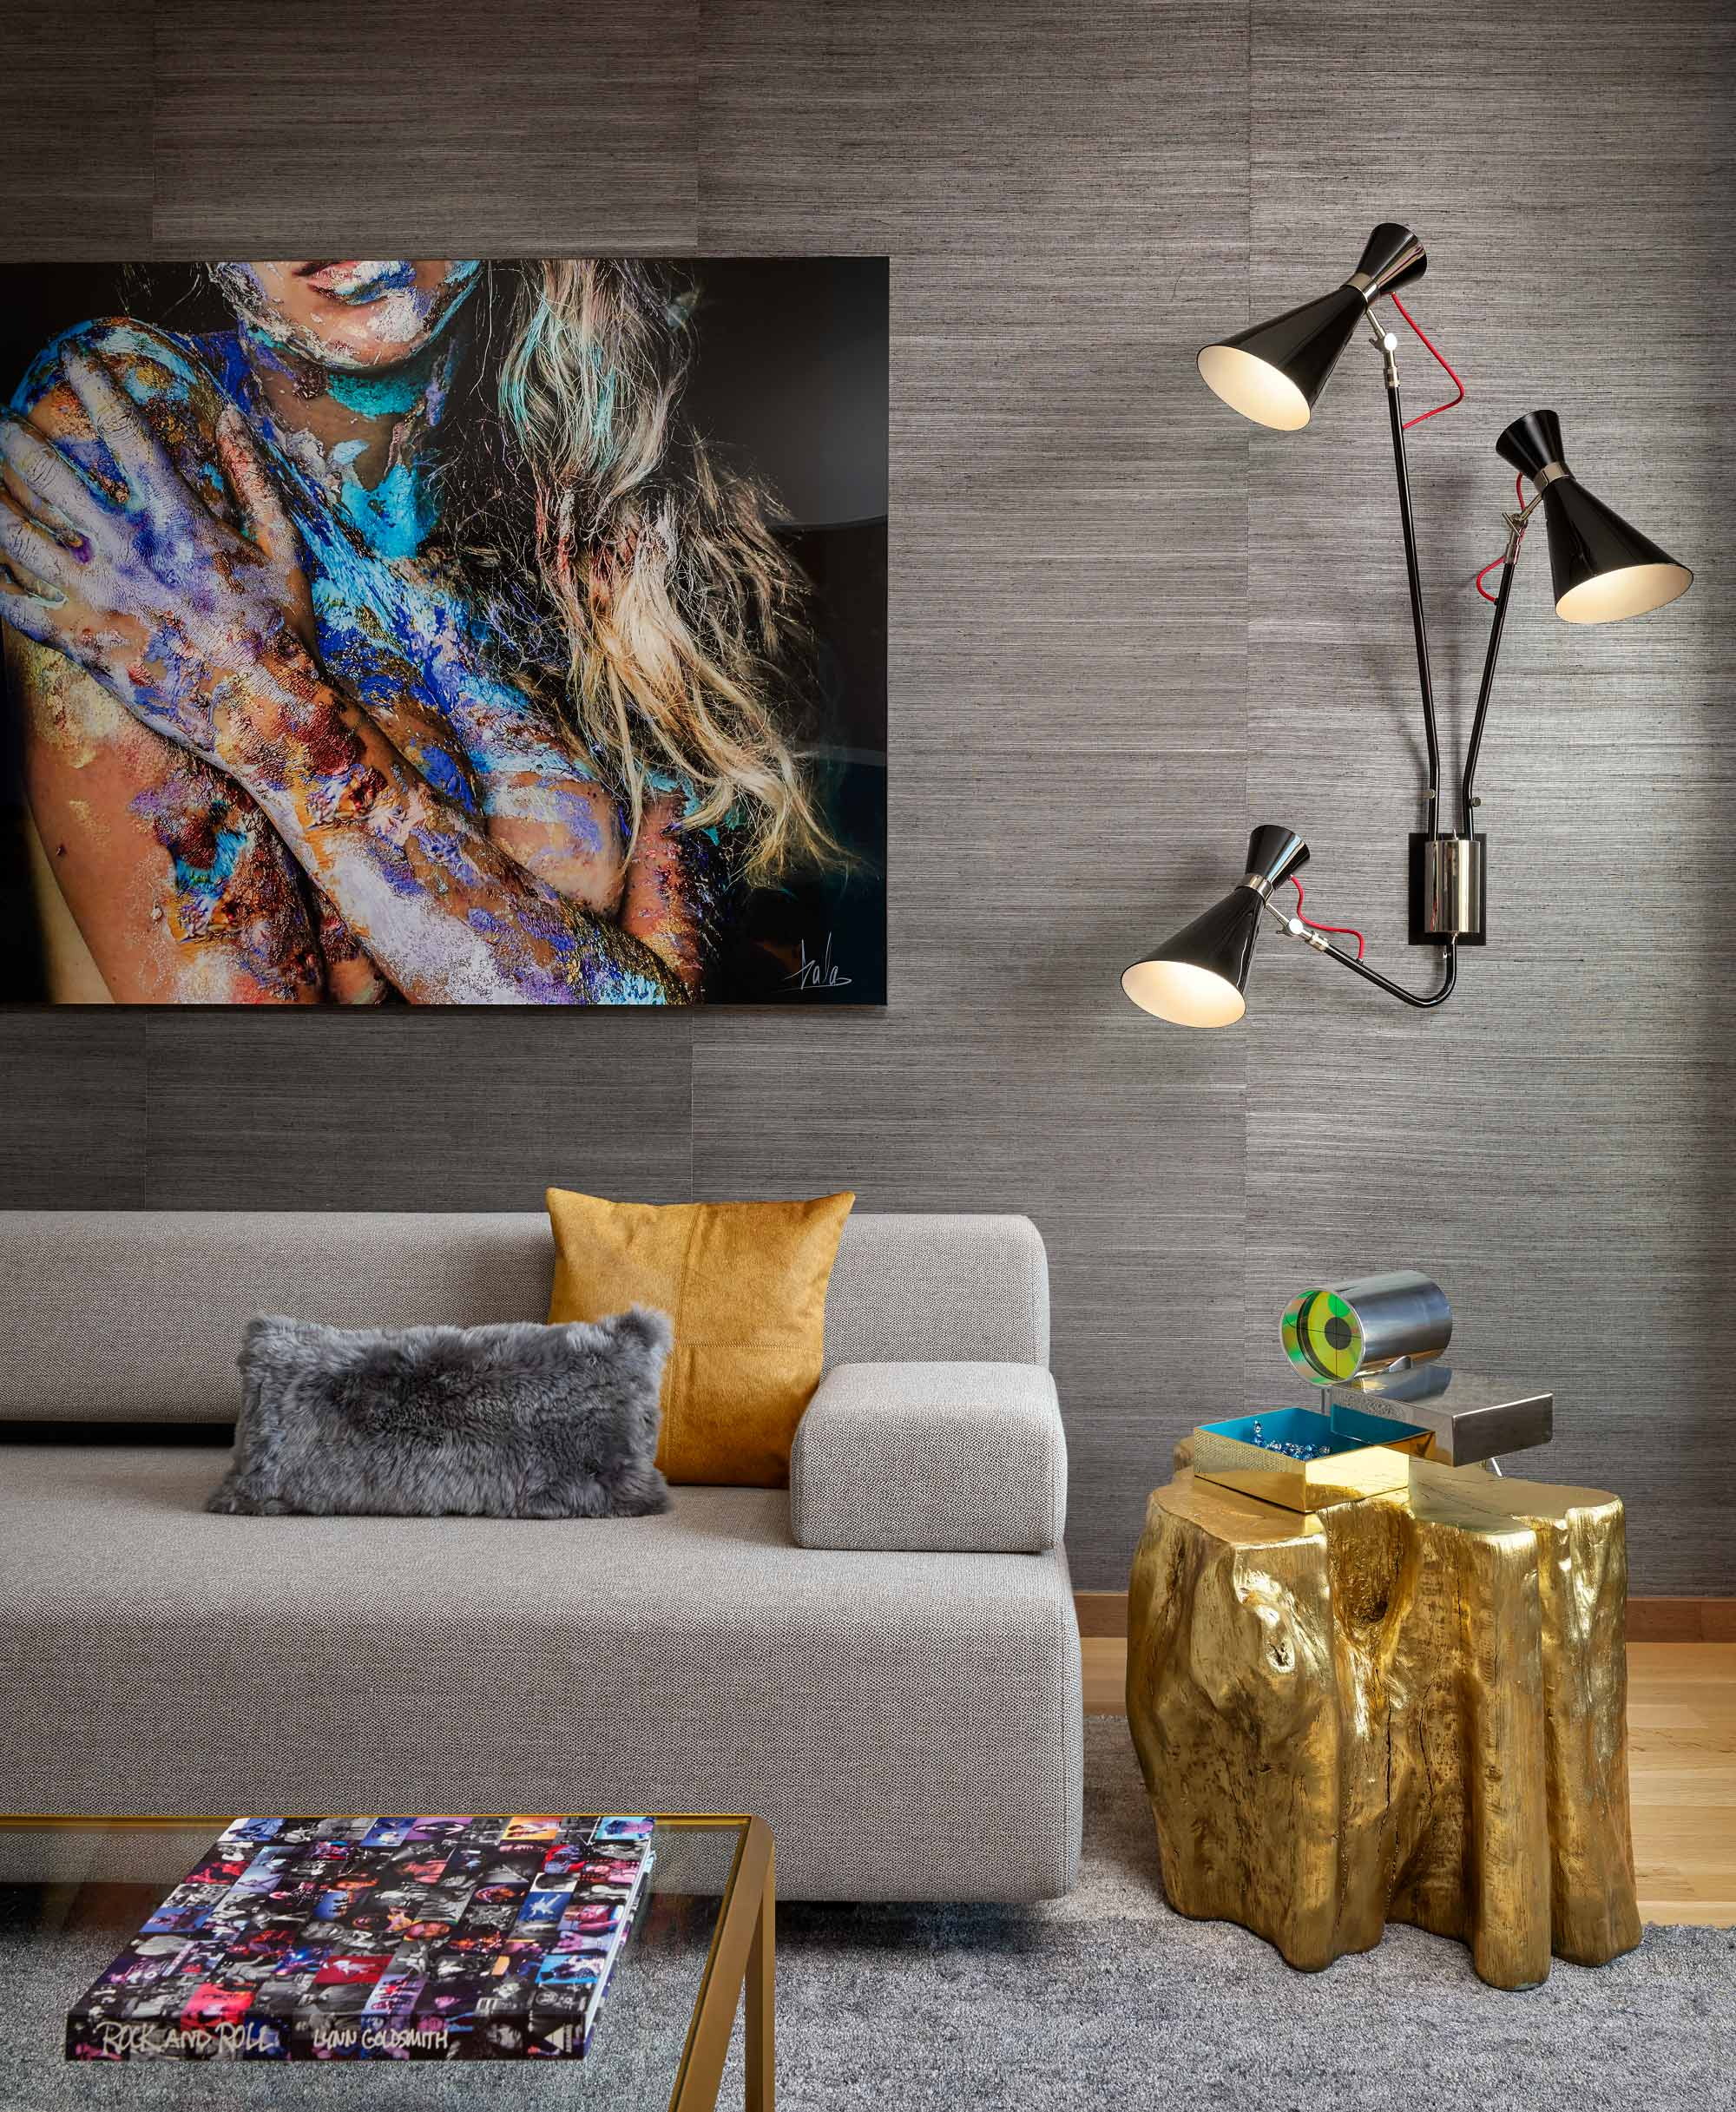 NYC-Interior-Pepe-Calderin-Design-Den-Art